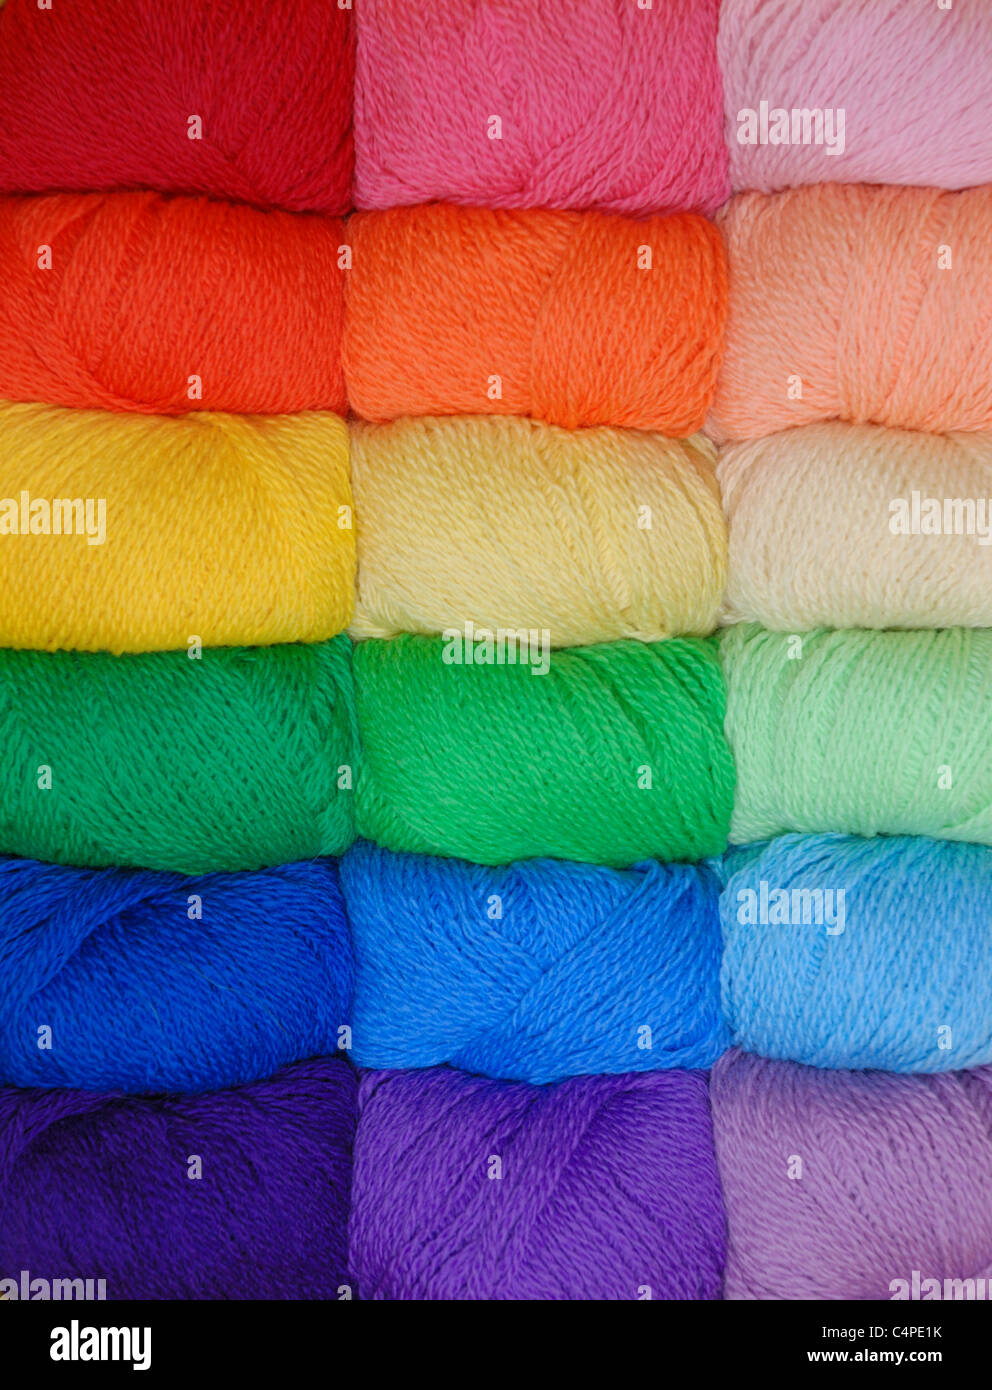 skeins of yarn in a spectrum of colors - Stock Image